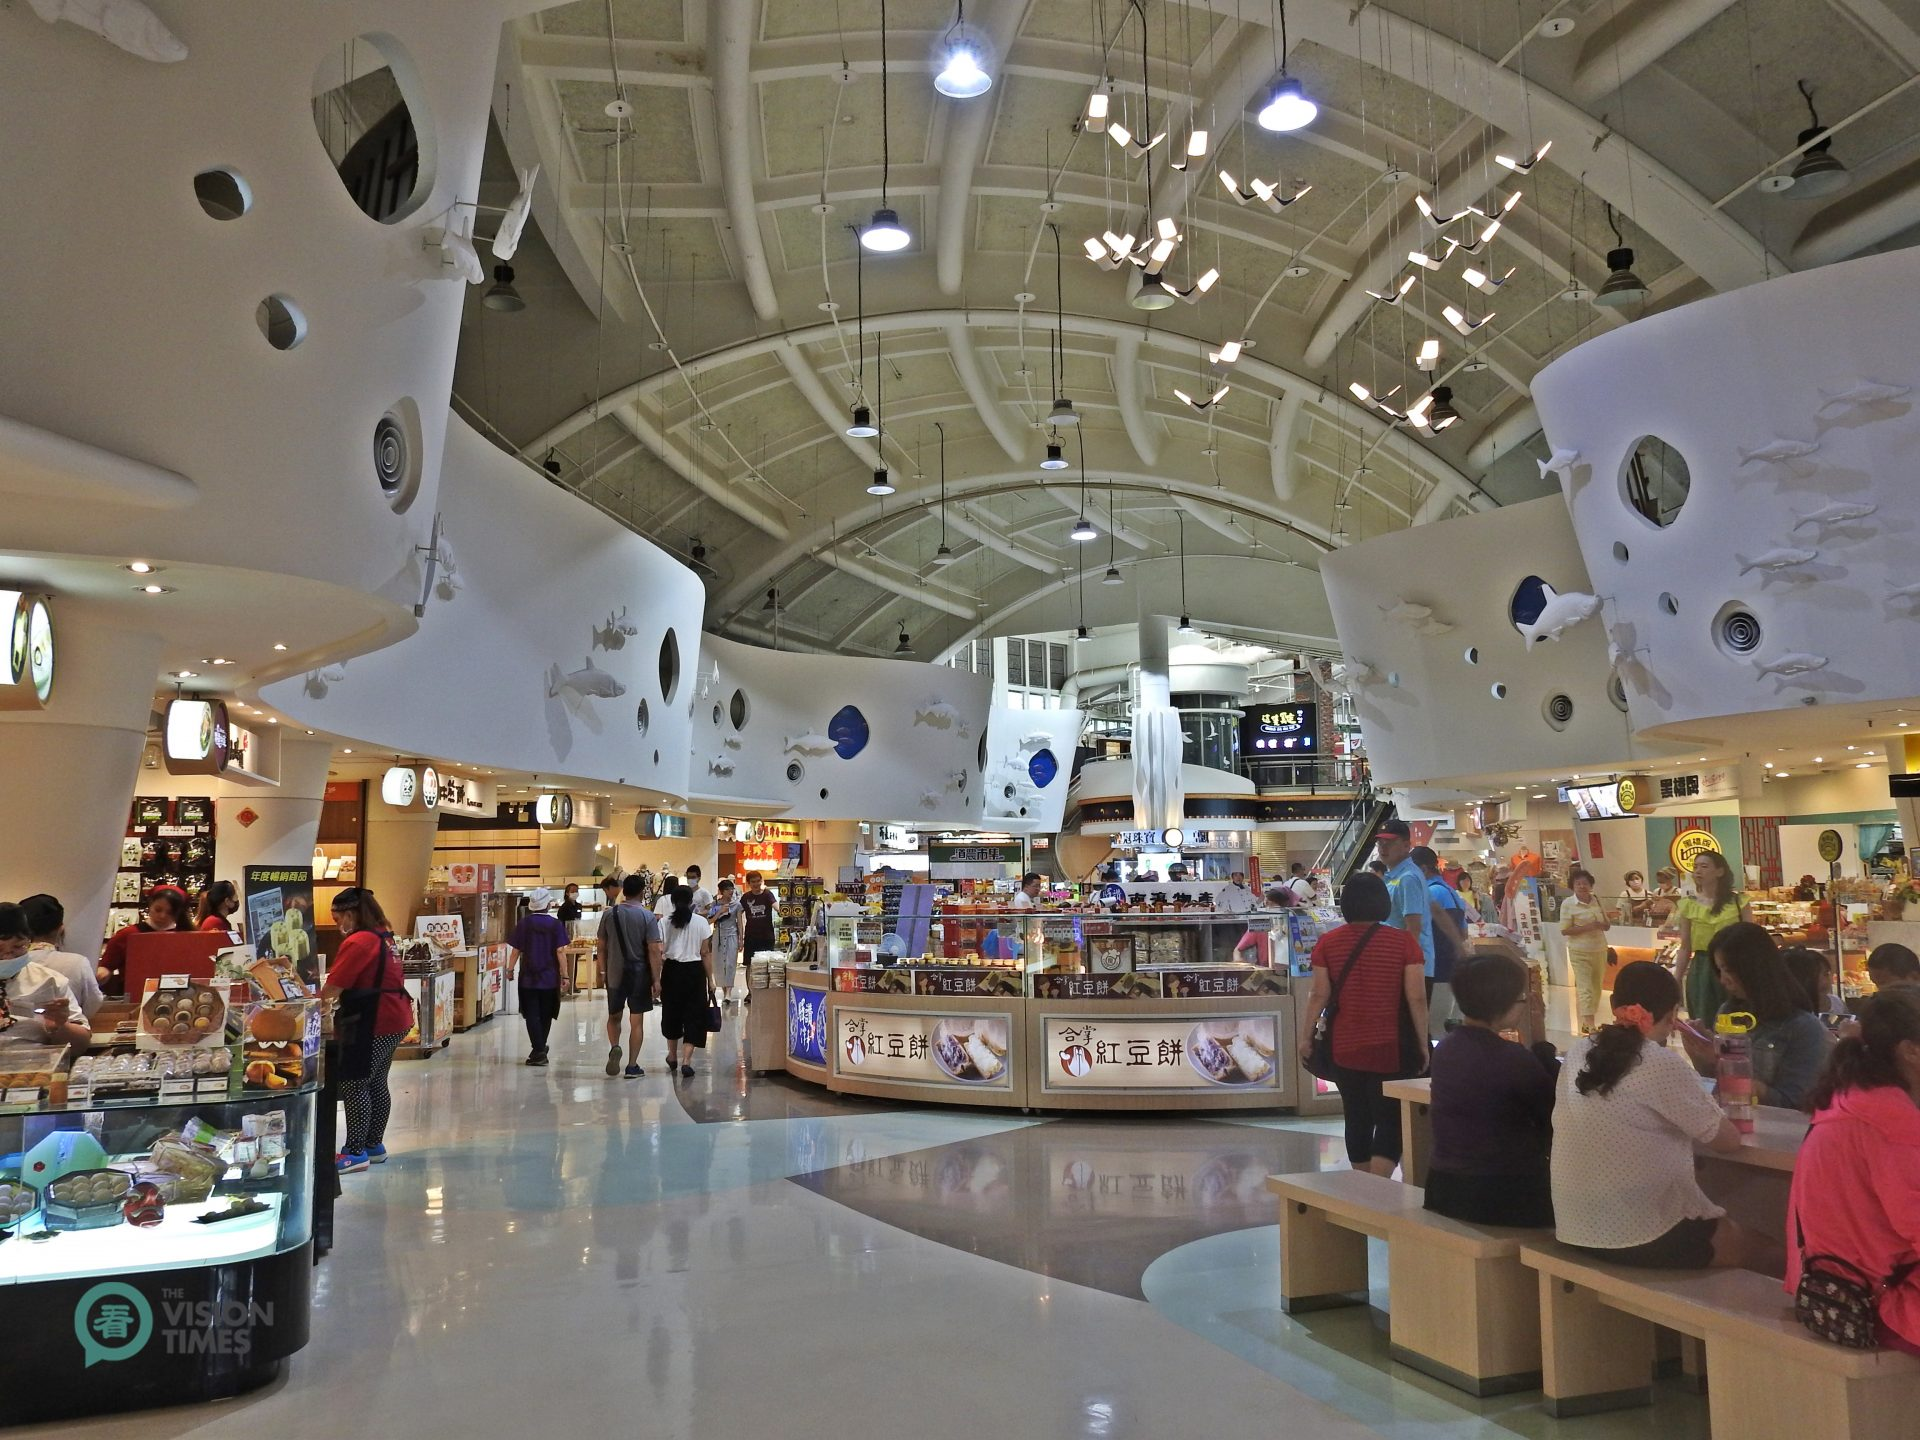 There is a high-ceiling shopping area in Dongshan Service Area. (Image: Billy Shyu / Vision Times)